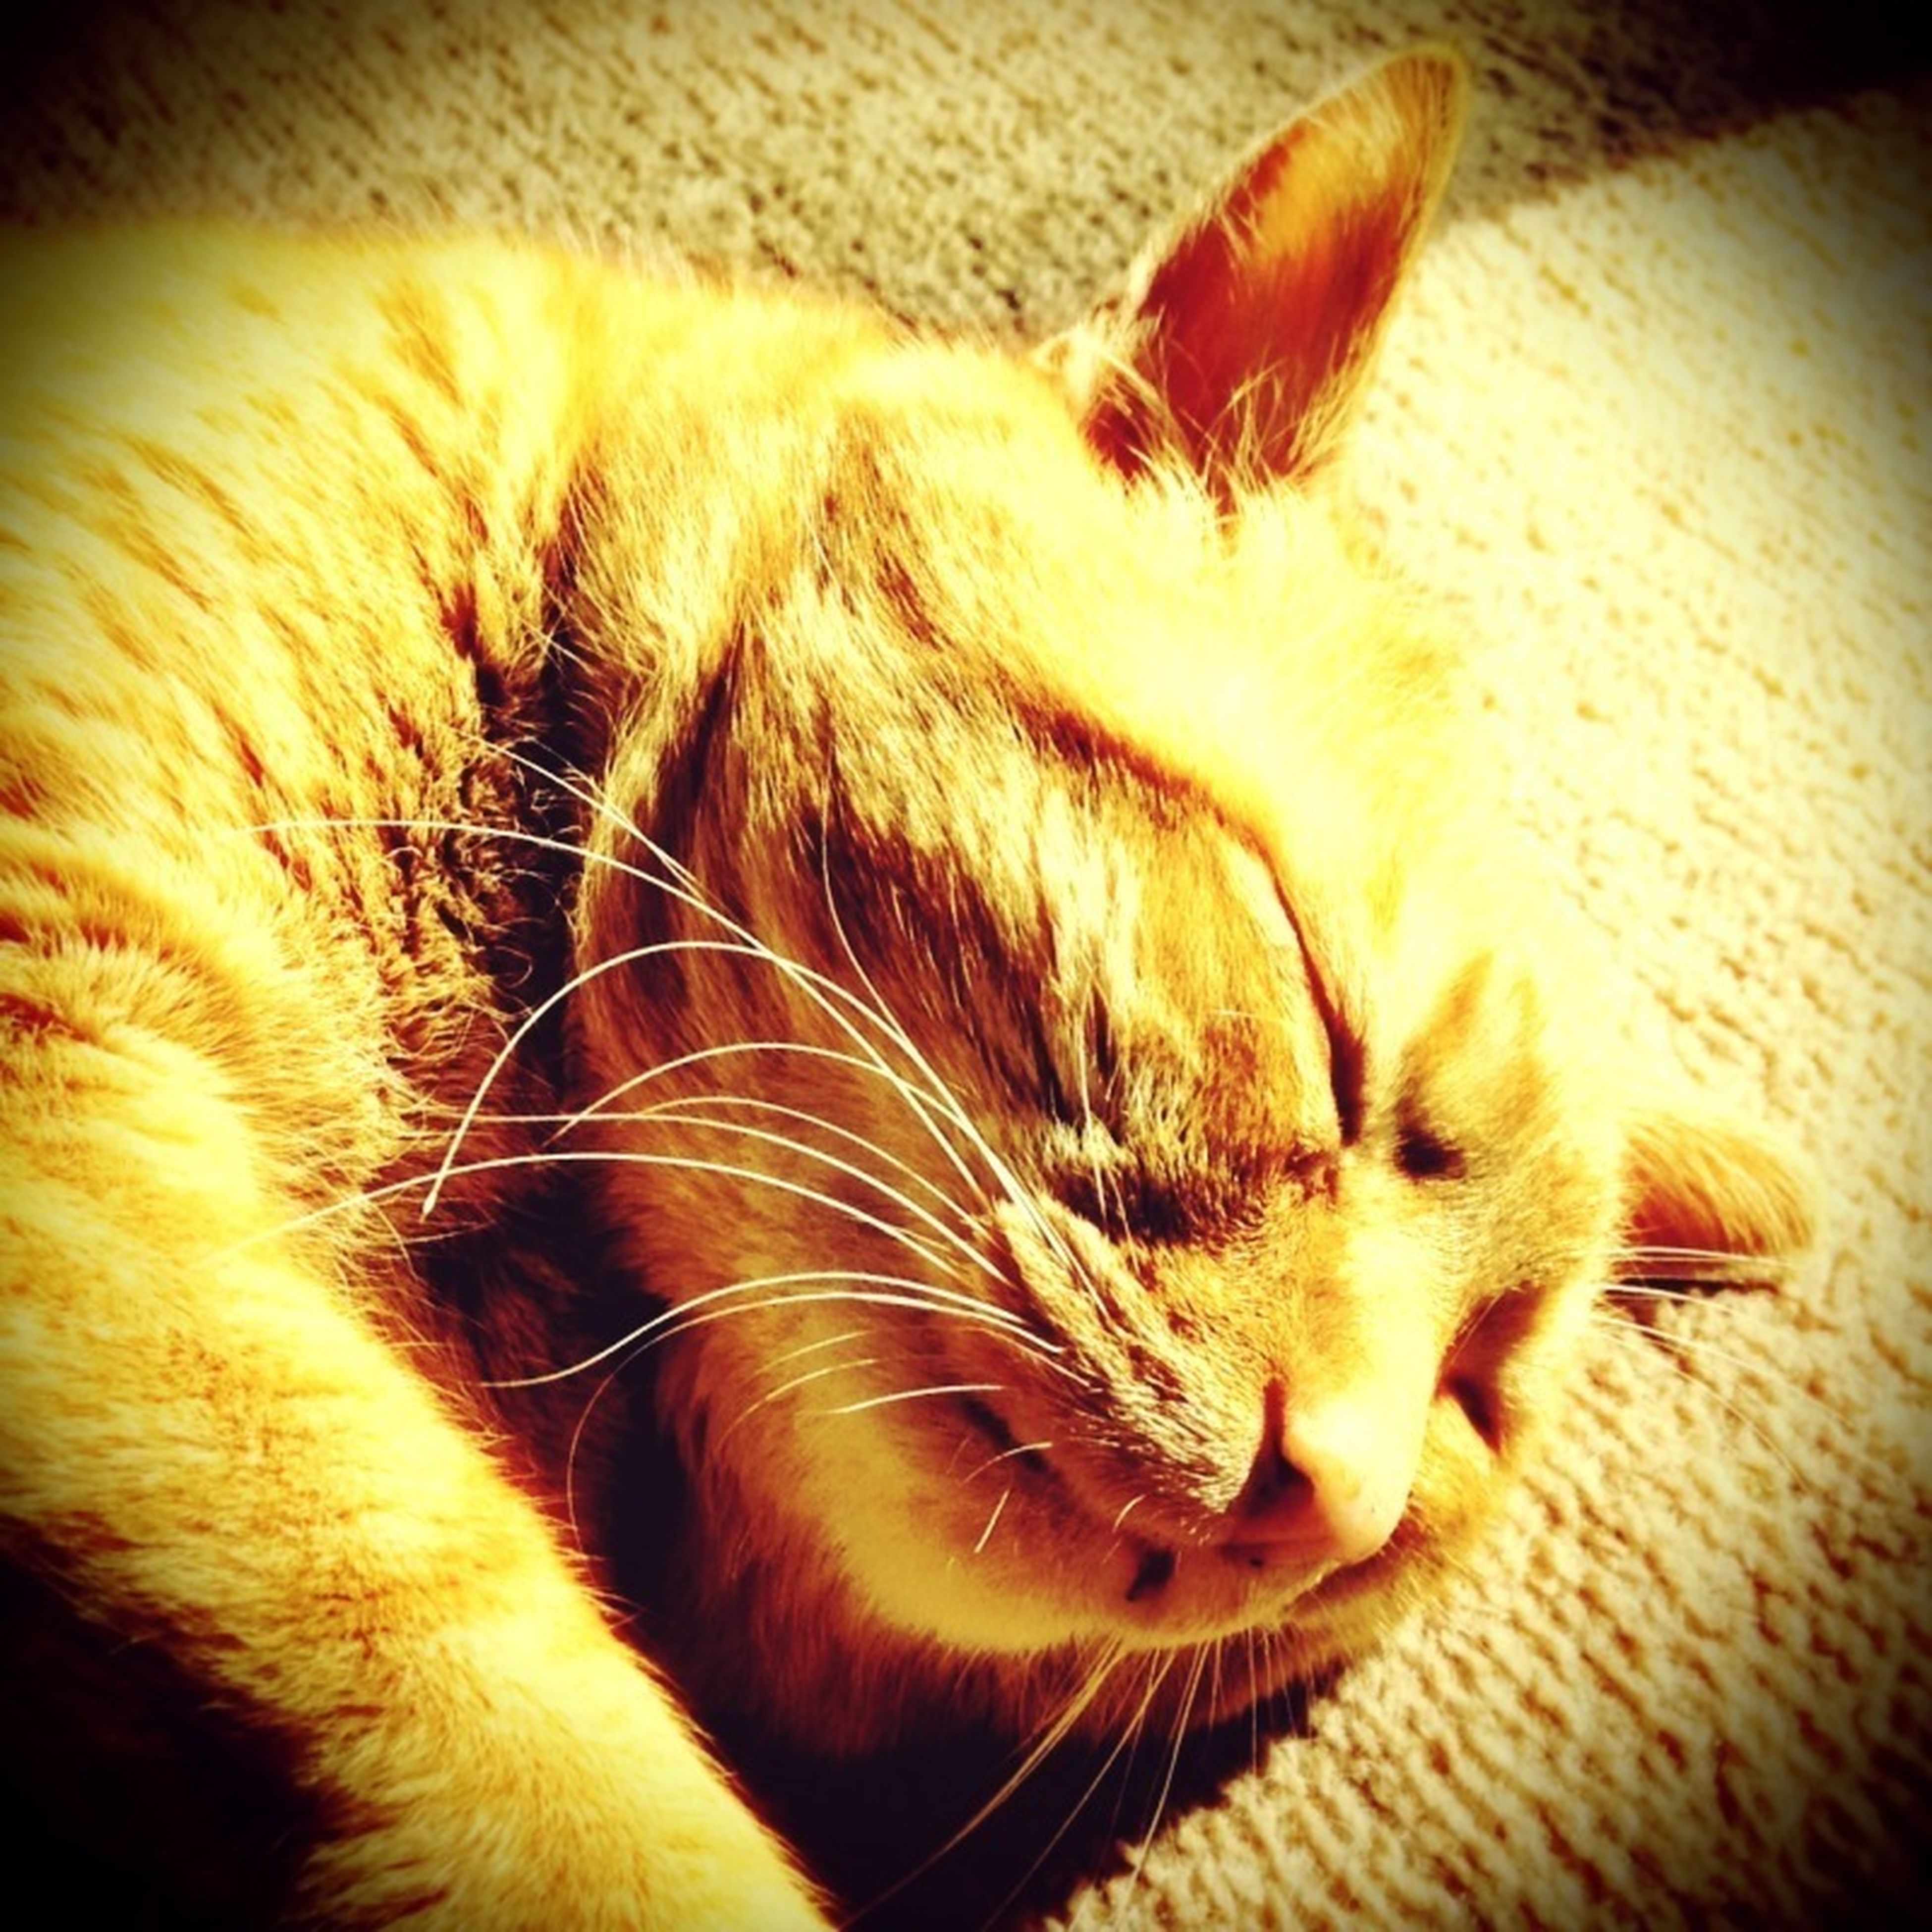 one animal, animal themes, domestic cat, pets, domestic animals, cat, mammal, indoors, feline, whisker, close-up, relaxation, animal head, animal body part, sleeping, resting, lying down, eyes closed, zoology, part of